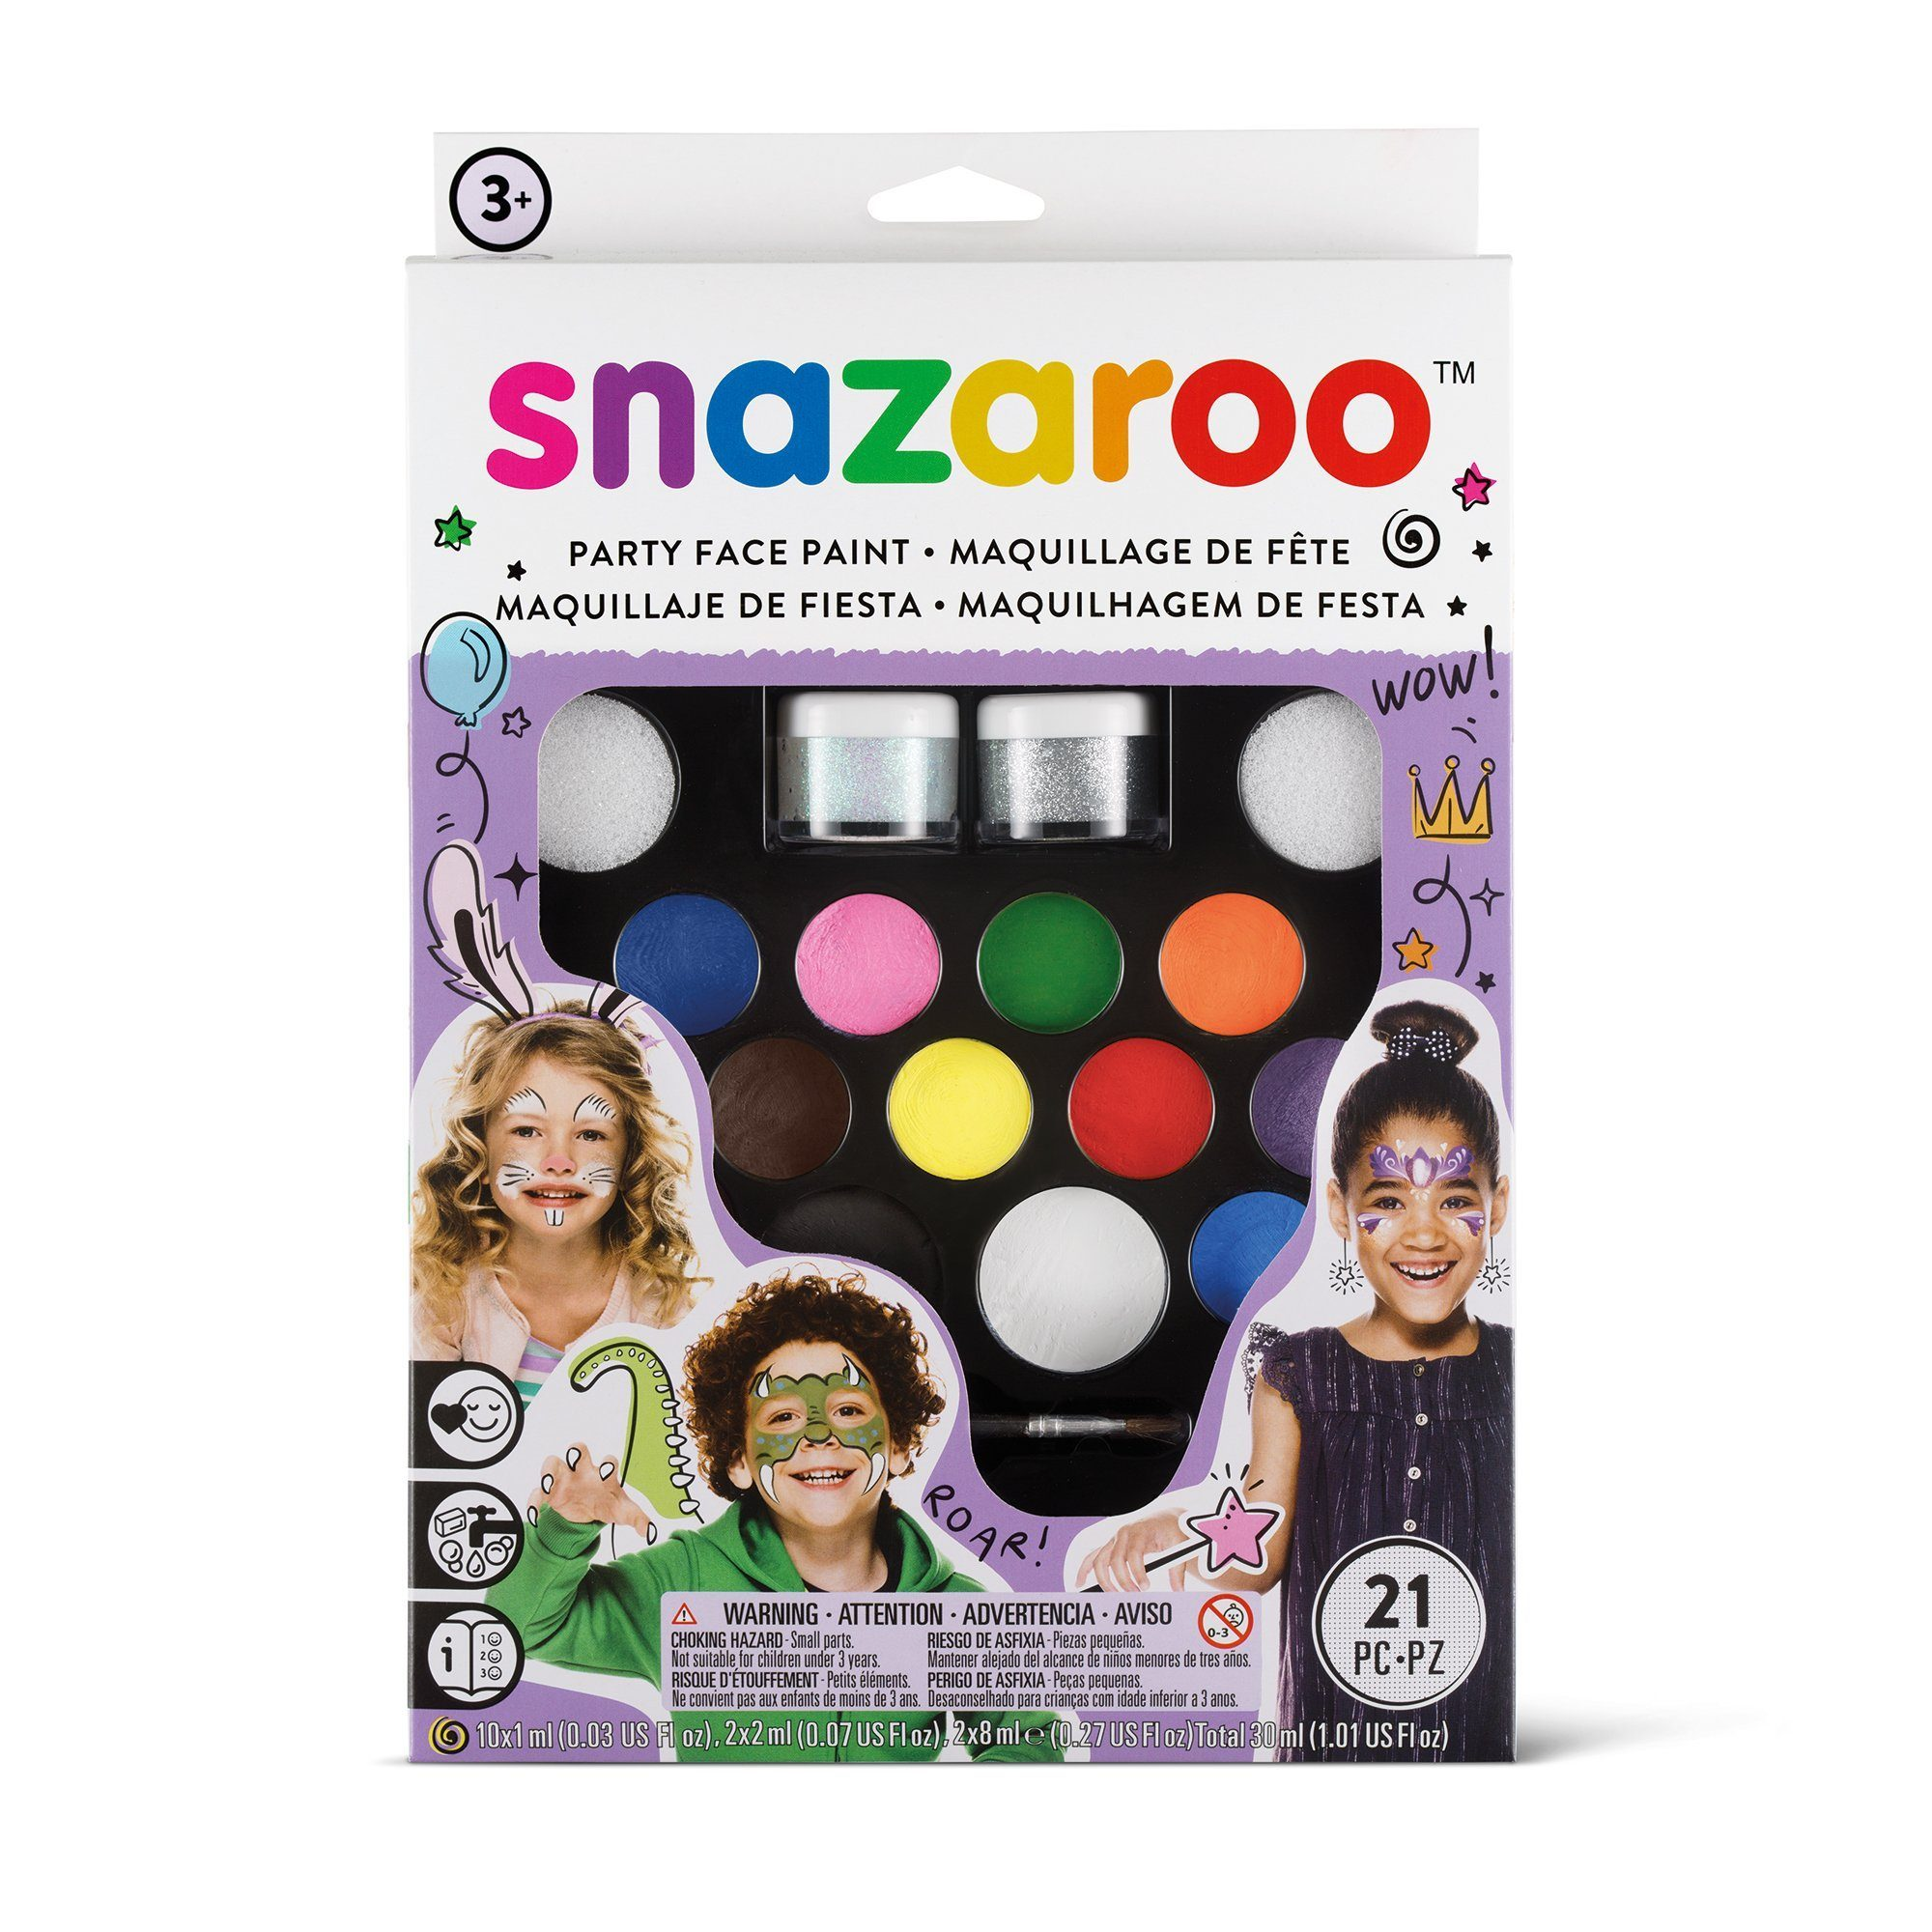 Snazaroo Ultimate Party Pack - stamptastic-uk